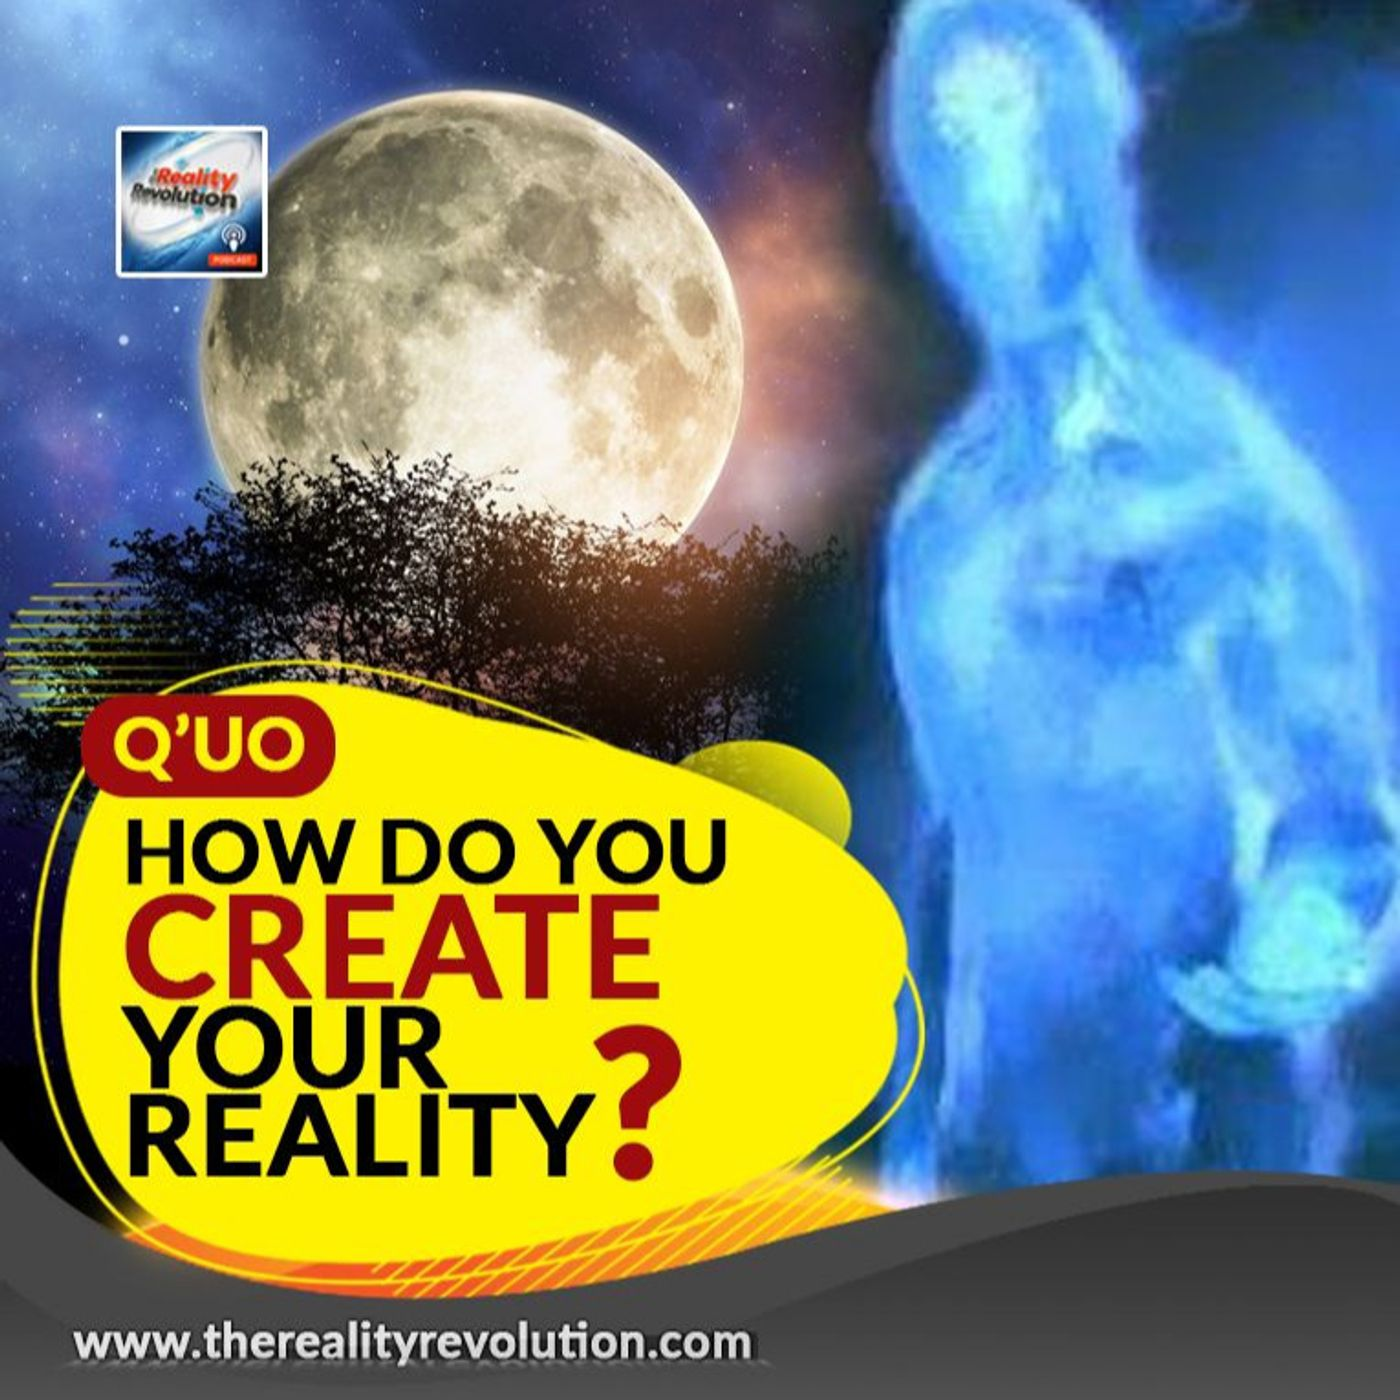 Q'uo - How Do We Create Our Reality?